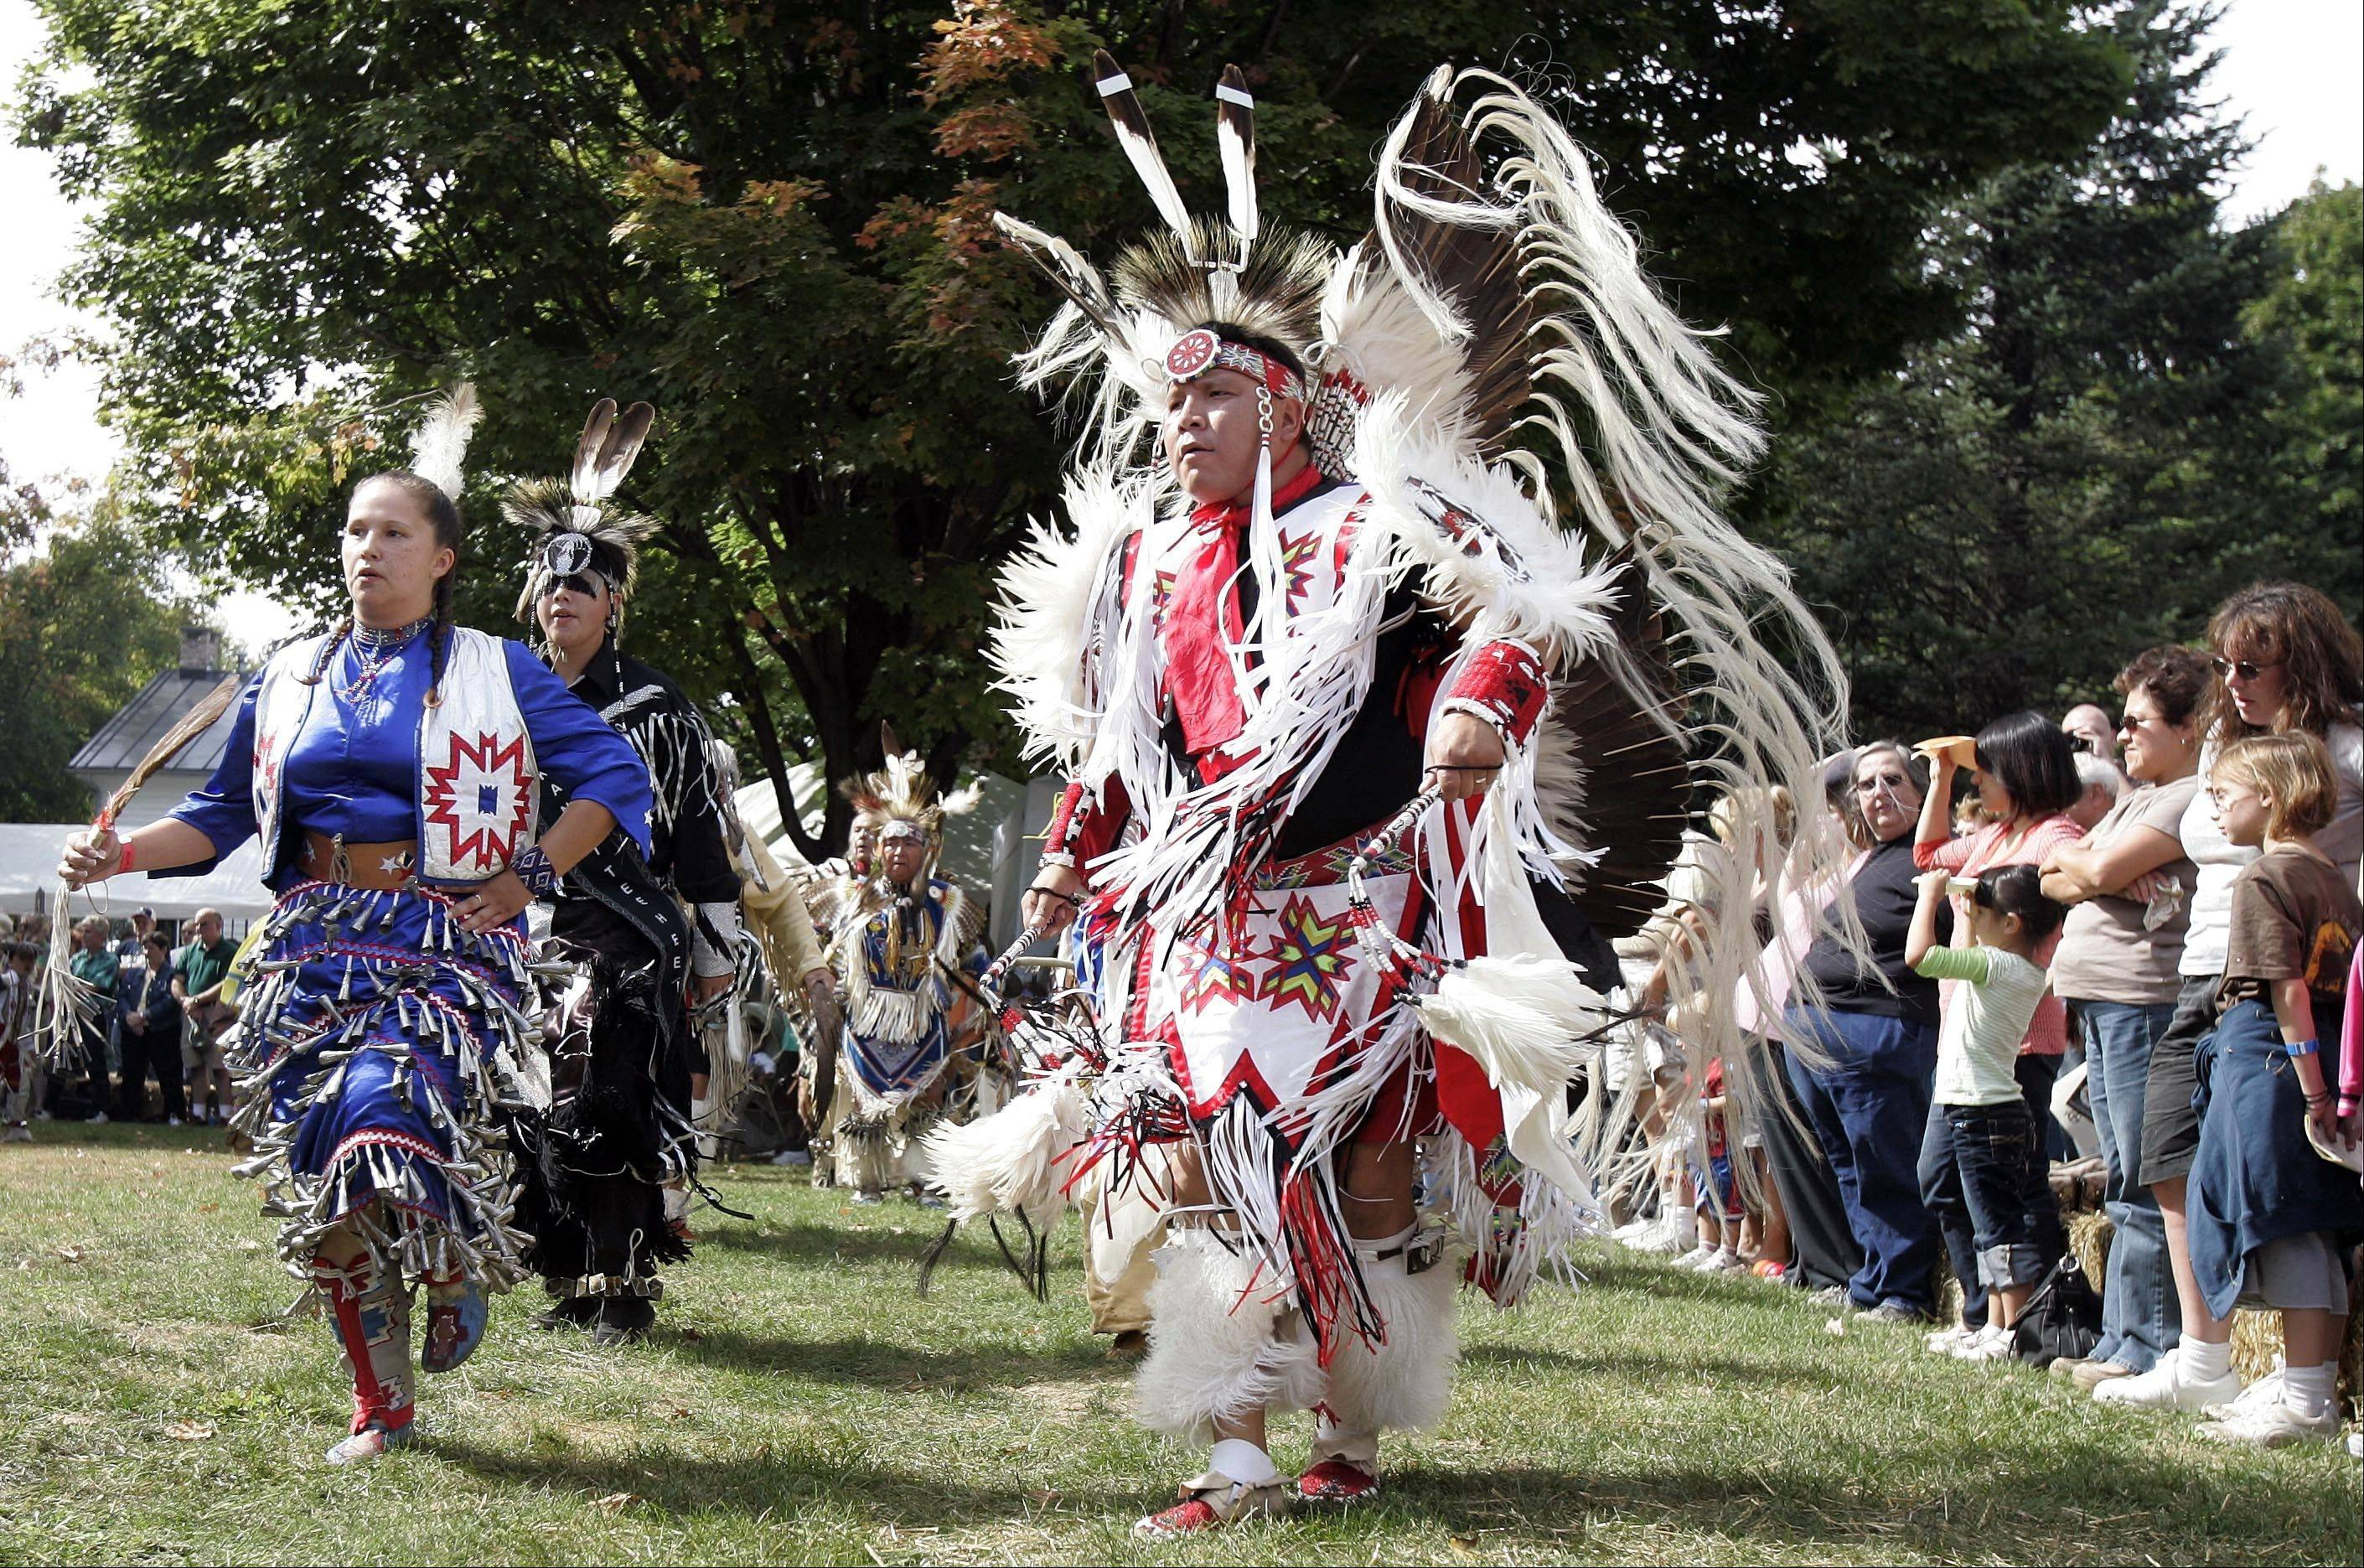 Grand Entries are among the highlights of the annual Harvest Pow Wow at Naper Settlement. Processions are at 1 and 7 p.m. Saturday and at 1 p.m. Sunday.